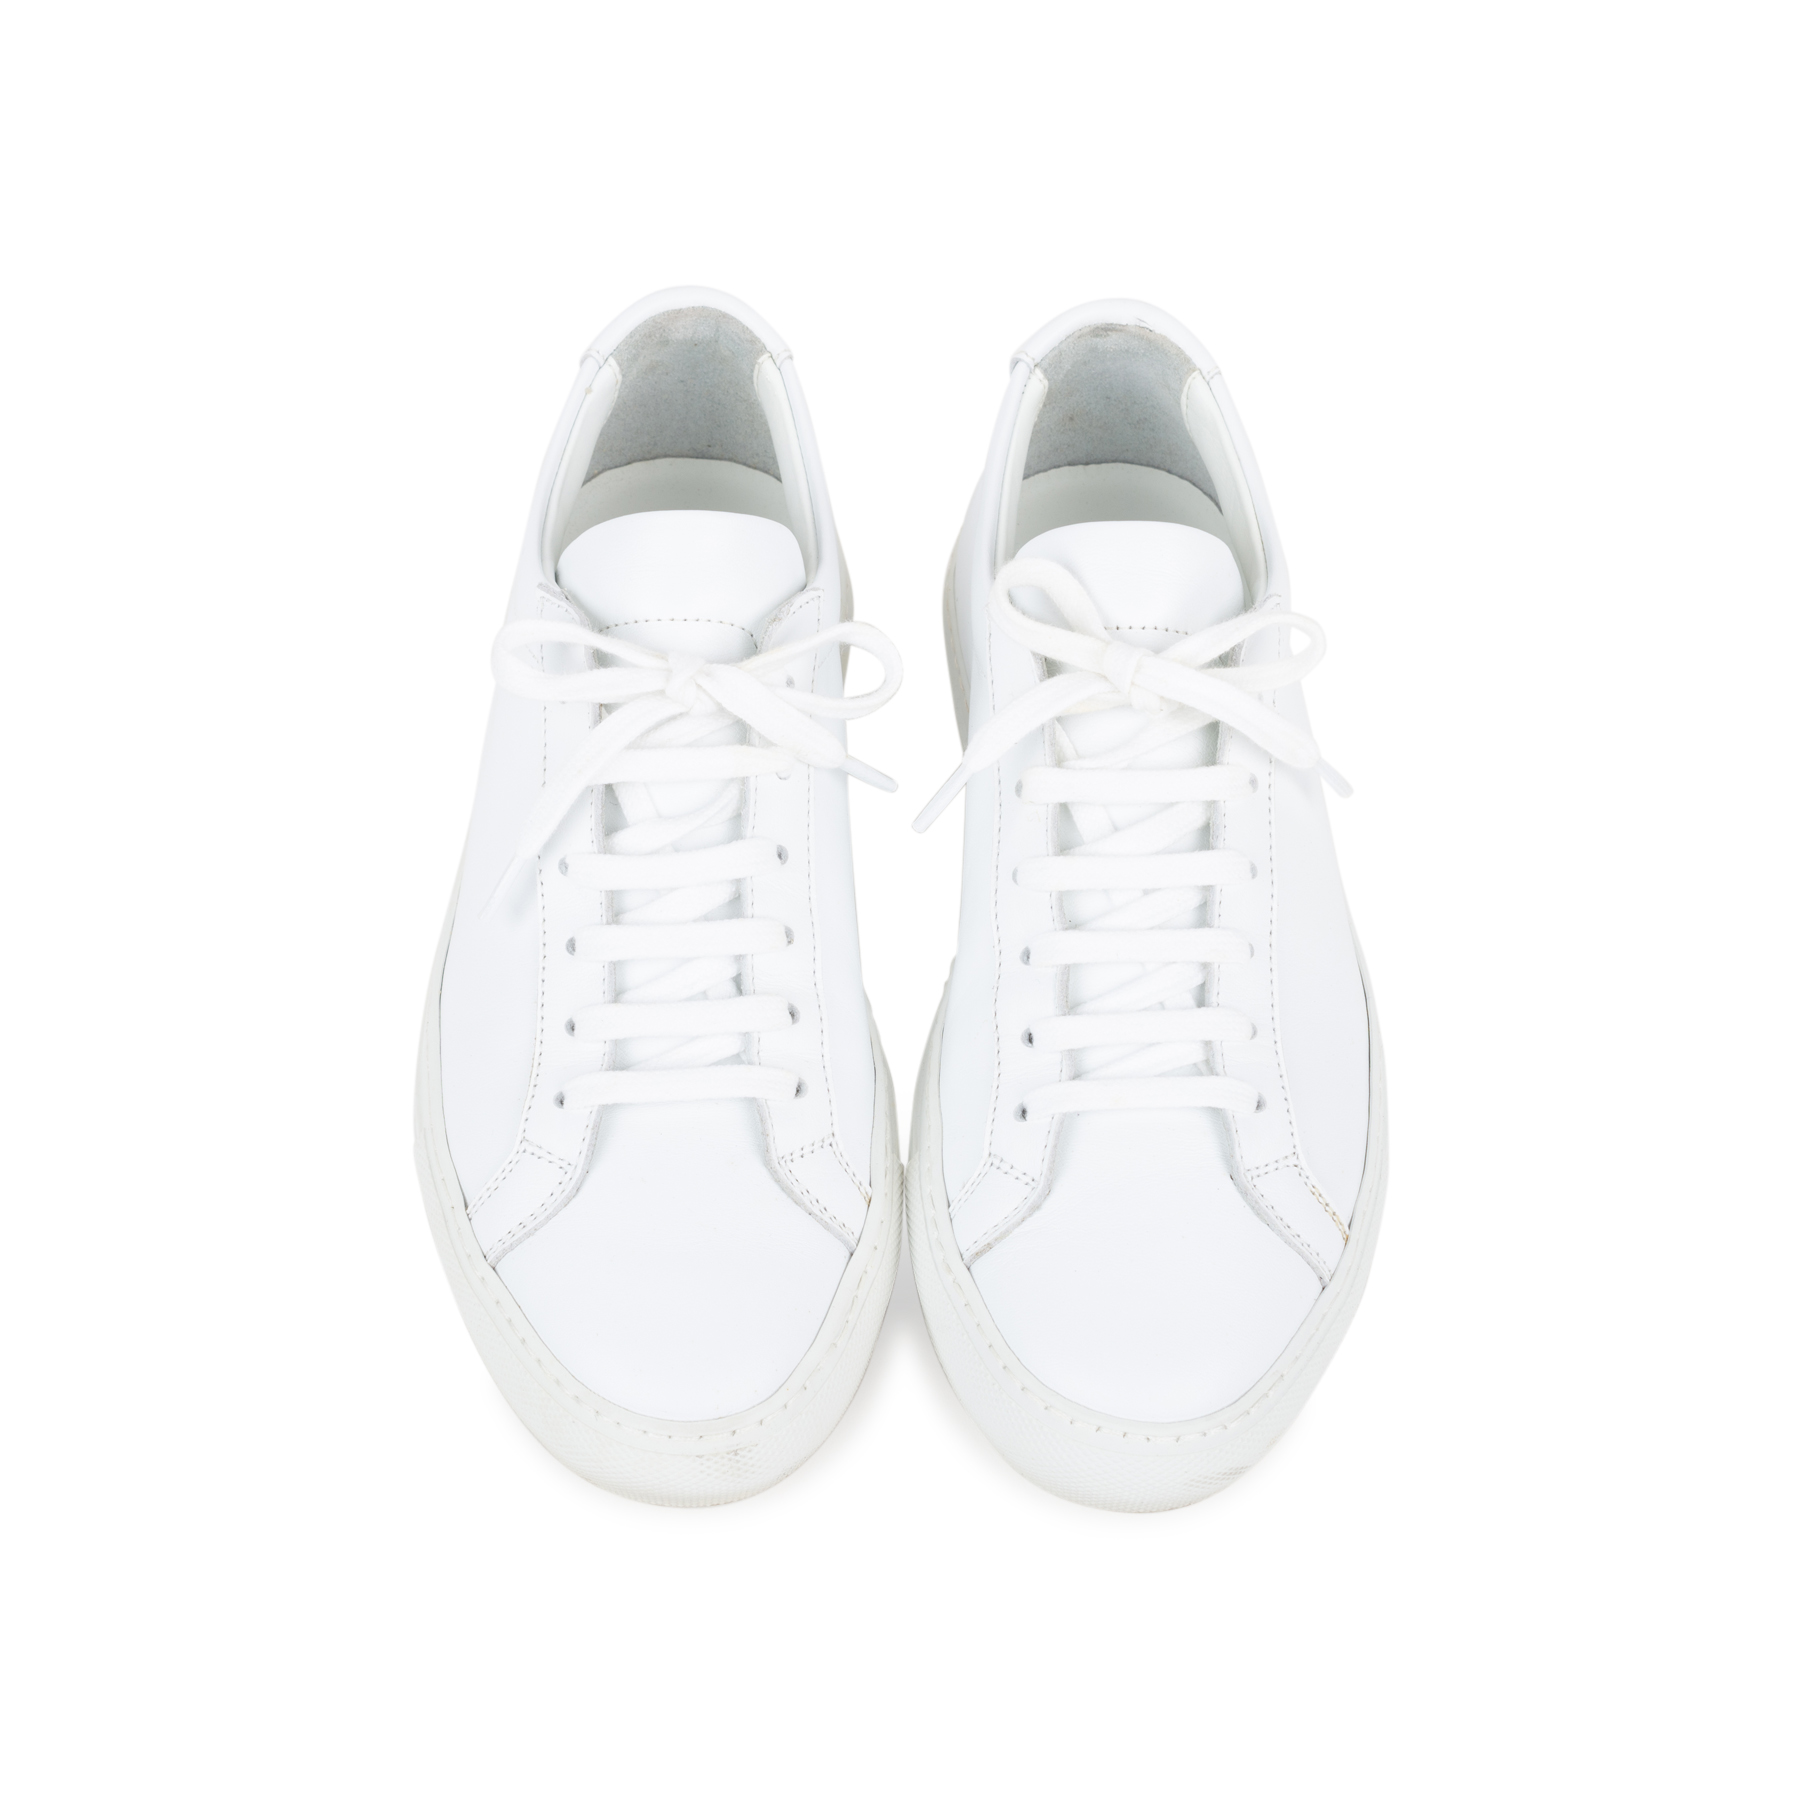 48d284a821a13e Authentic Second Hand Common Projects Achilles Low Sneakers (PSS-558-00019)  - THE FIFTH COLLECTION